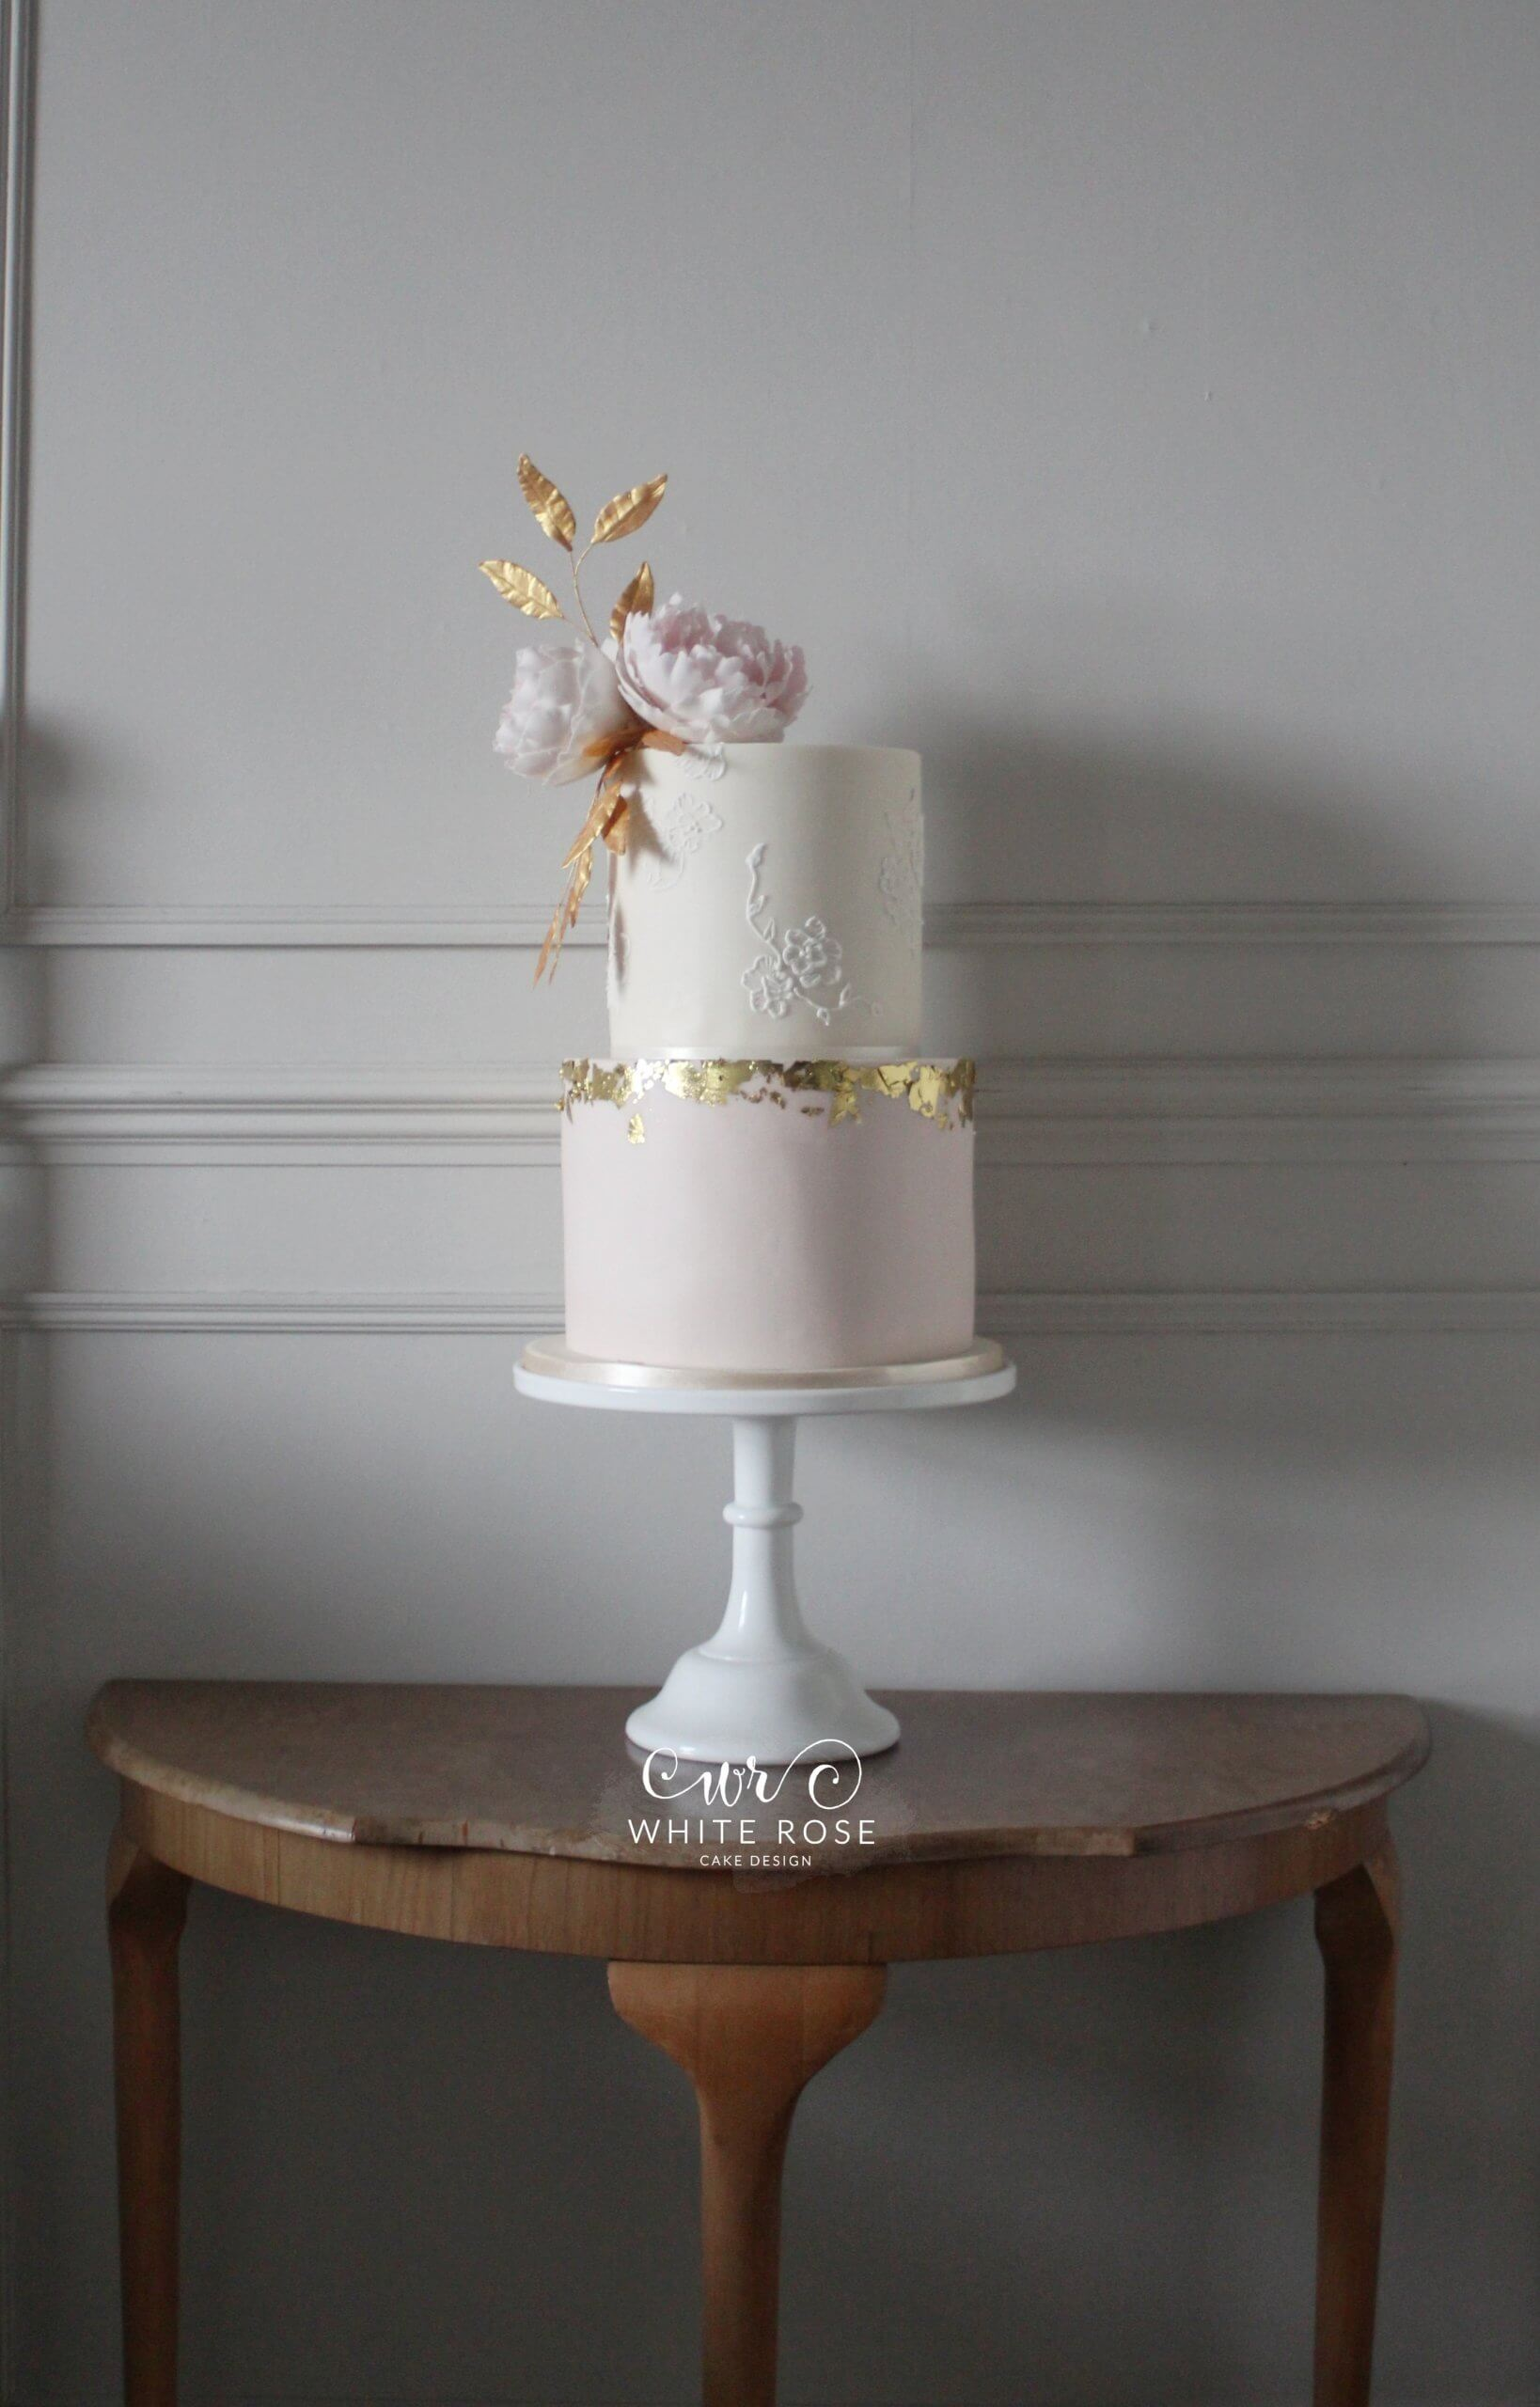 Two Tier Blush and Gold Wedding Cake by White Rose Cake Design in West Yorkshire